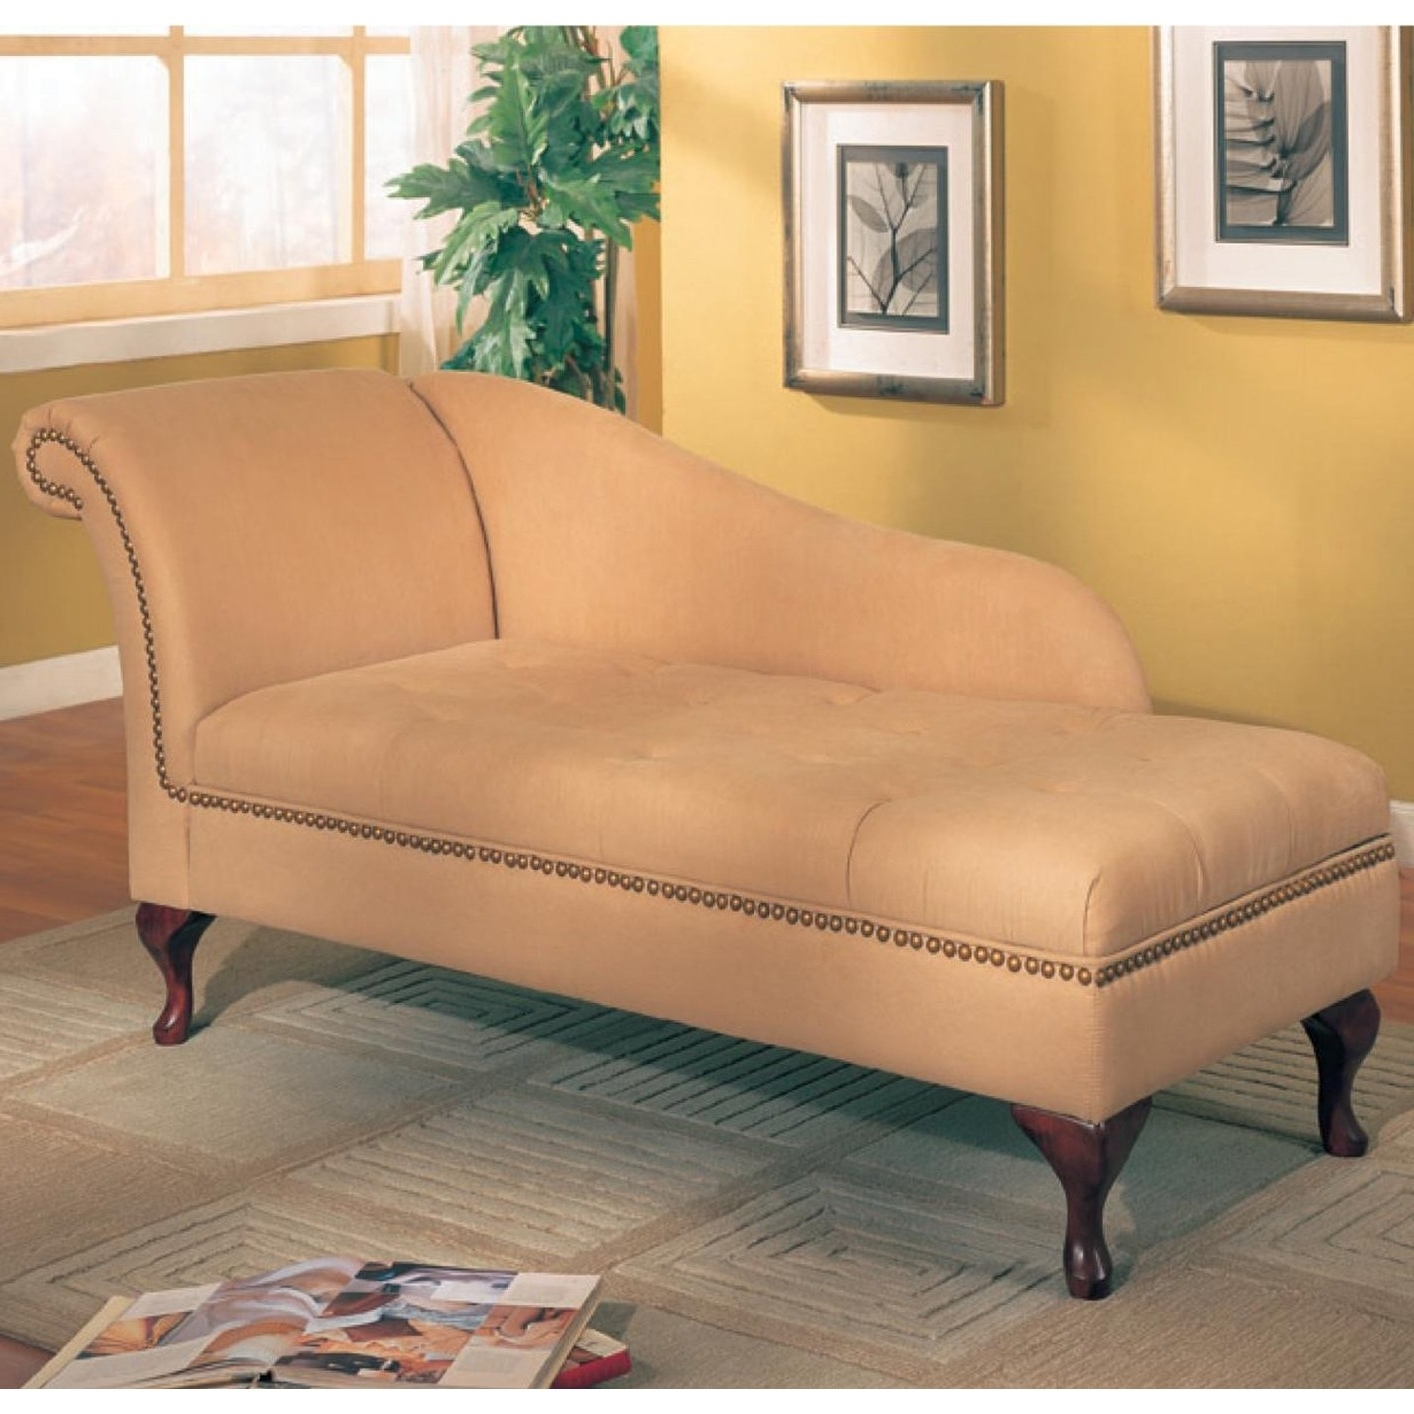 Coaster Furniture 550058 Microfiber Chaise Lounge With Flip Open Throughout Well Liked Microfiber Chaises (View 10 of 15)